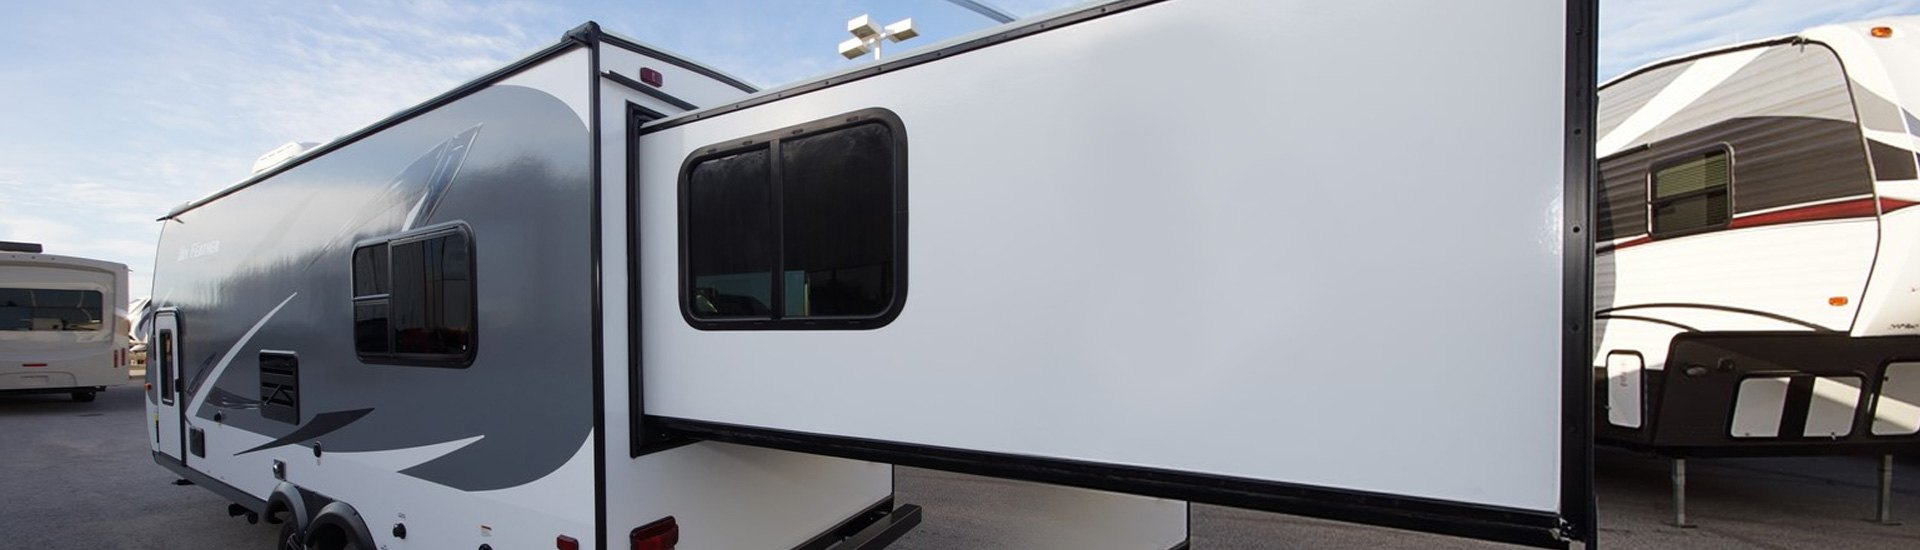 RV Slide-Out Parts | Awnings, Covers, Supports, Motors ...